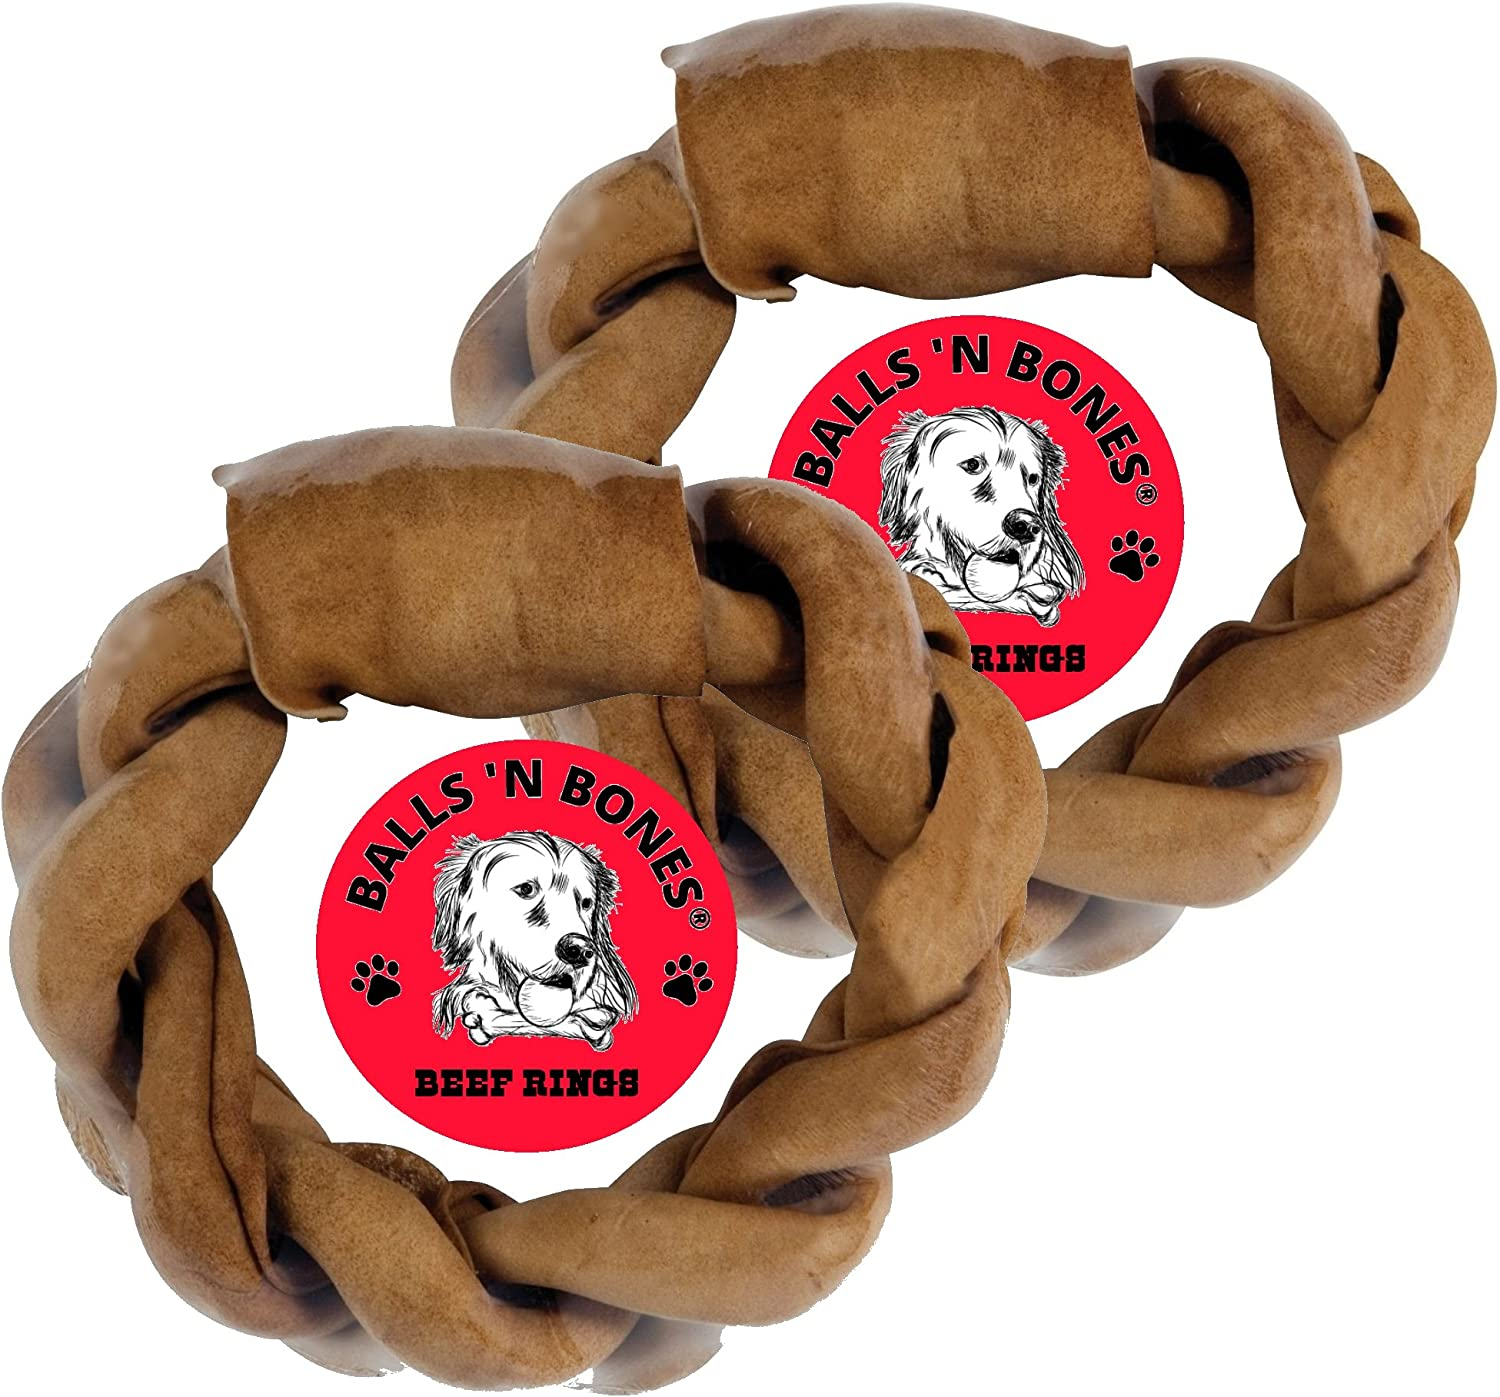 Balls n Bones 8 Beef Braided Rawhide Ring for Large Dogs, Safety-Sealed, Twin-Pack